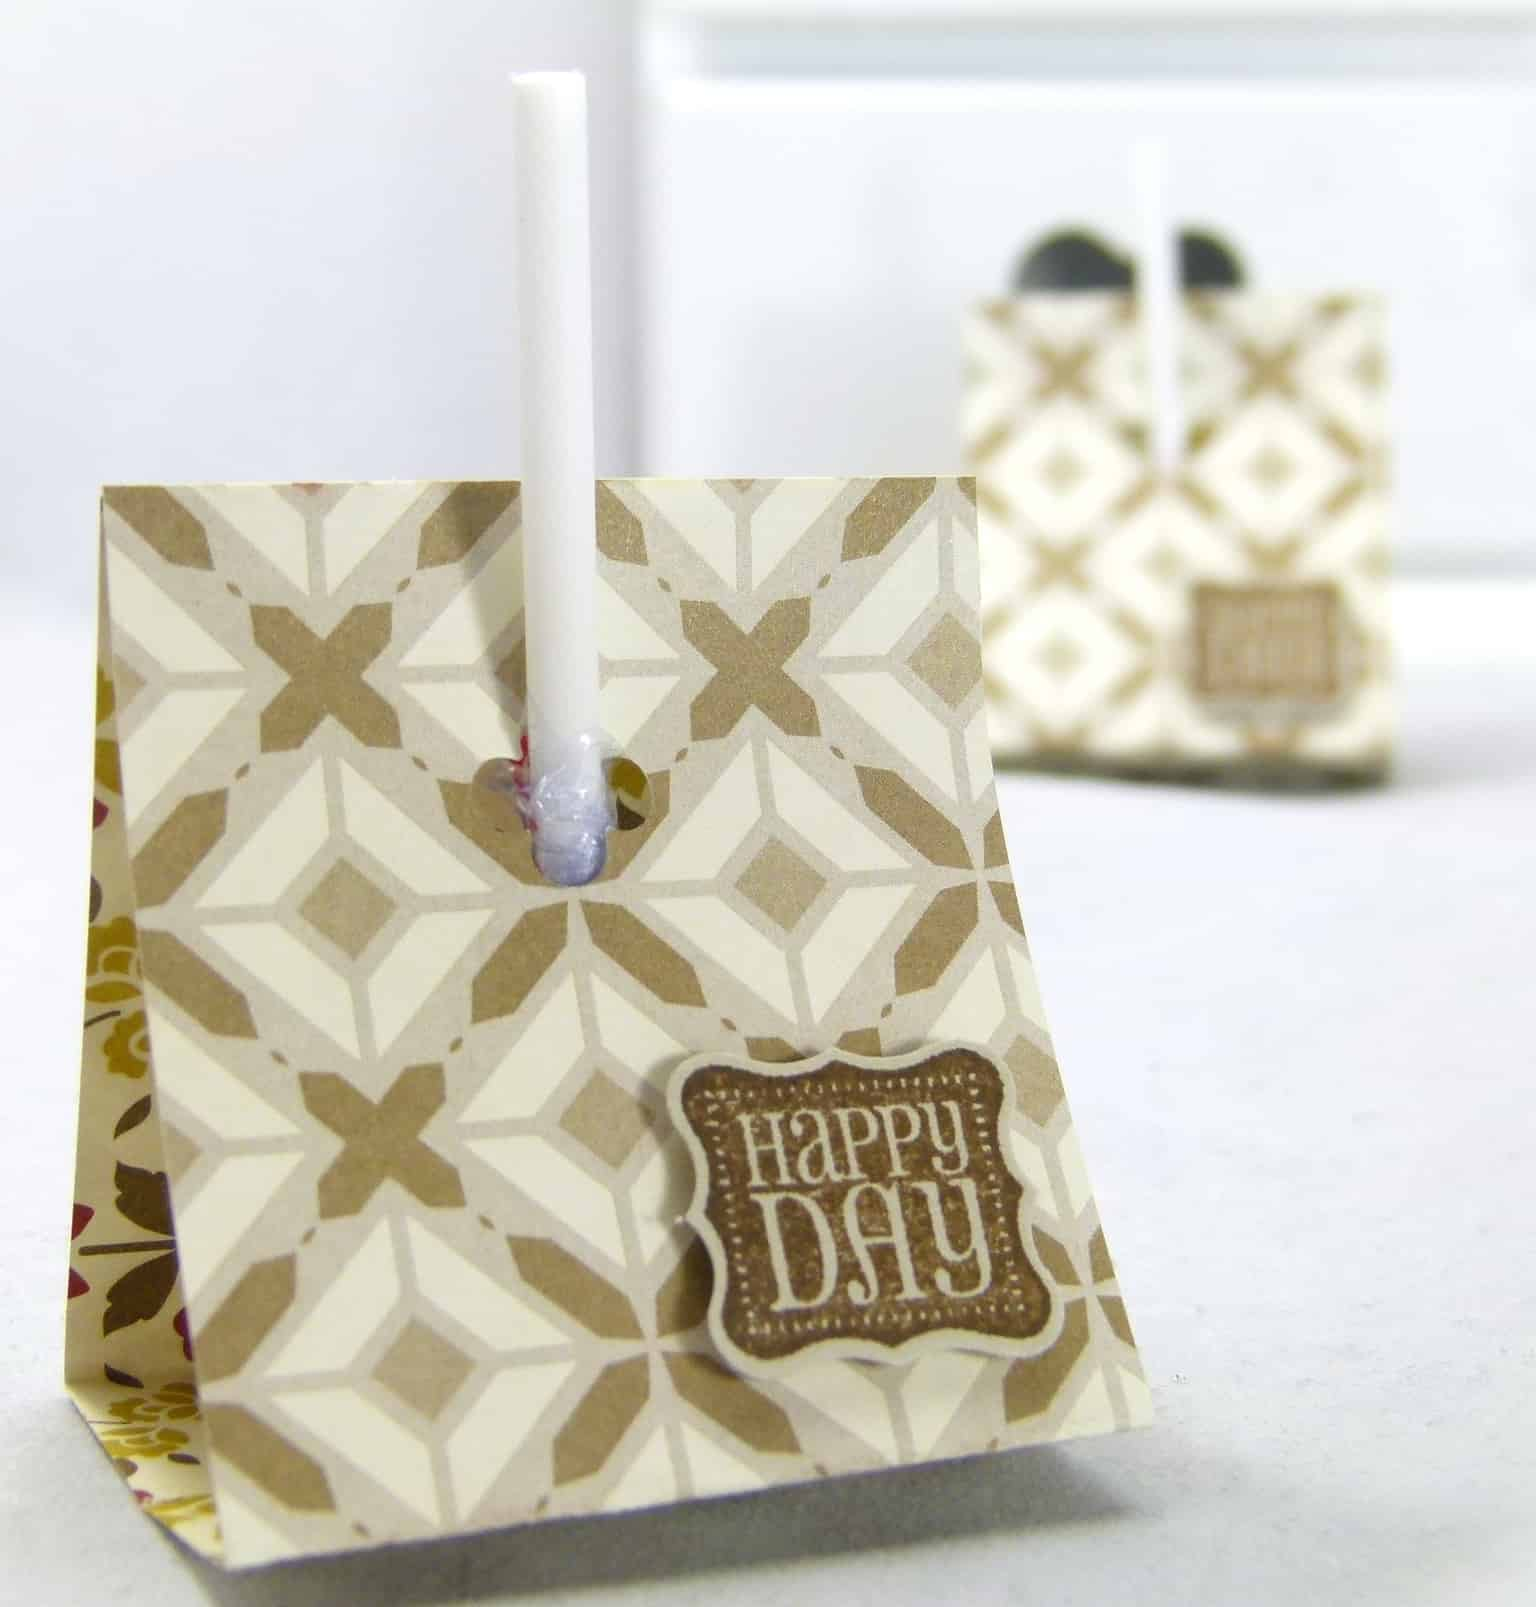 Stampin' Up! UK Lollipop Holder VIDEO